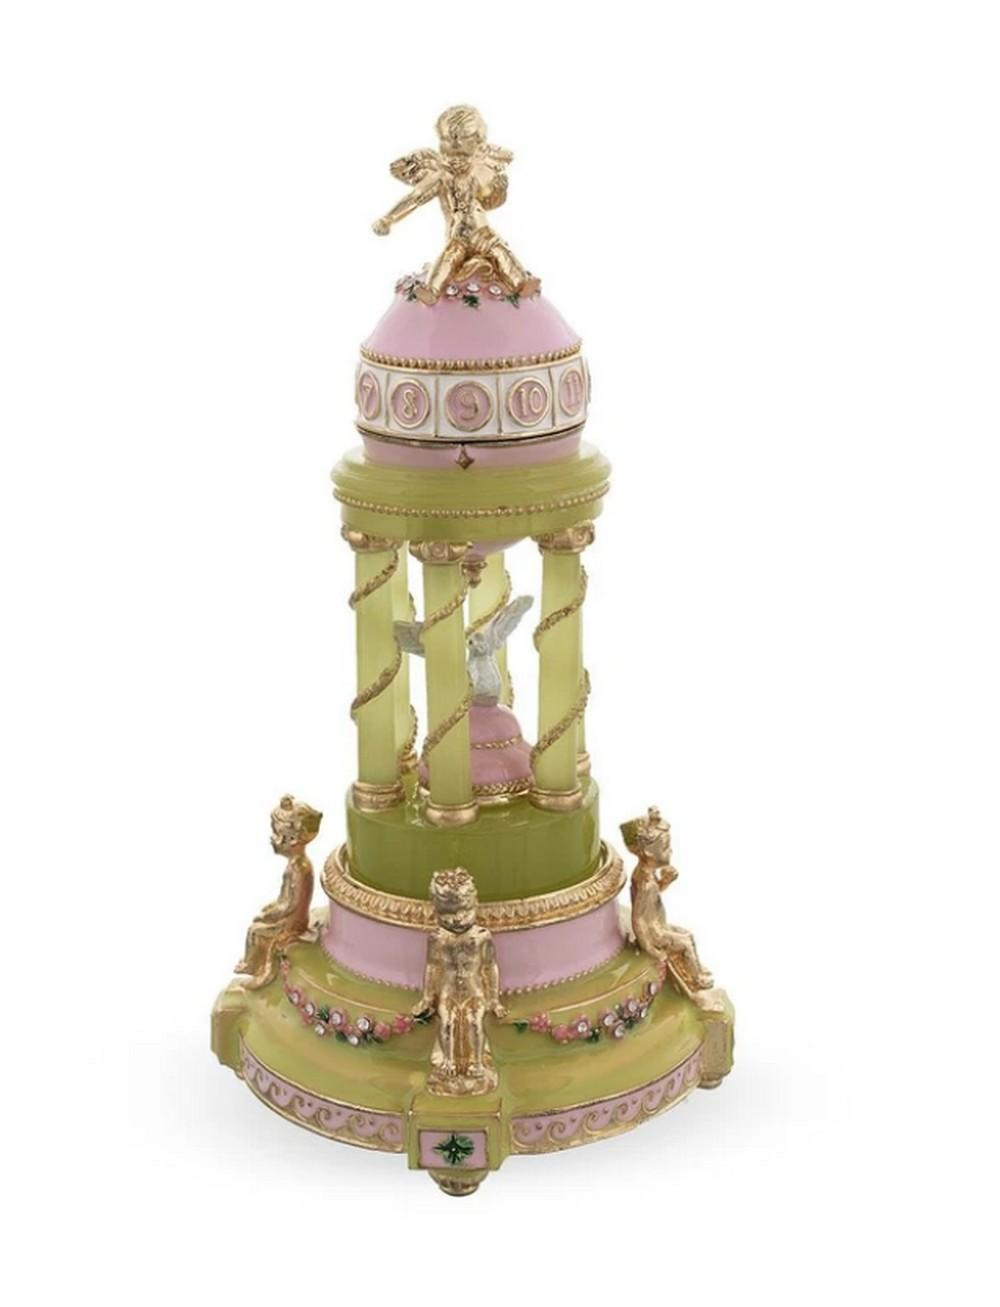 1910 Royal Russian Inspired Egg - The Colonnade Musical